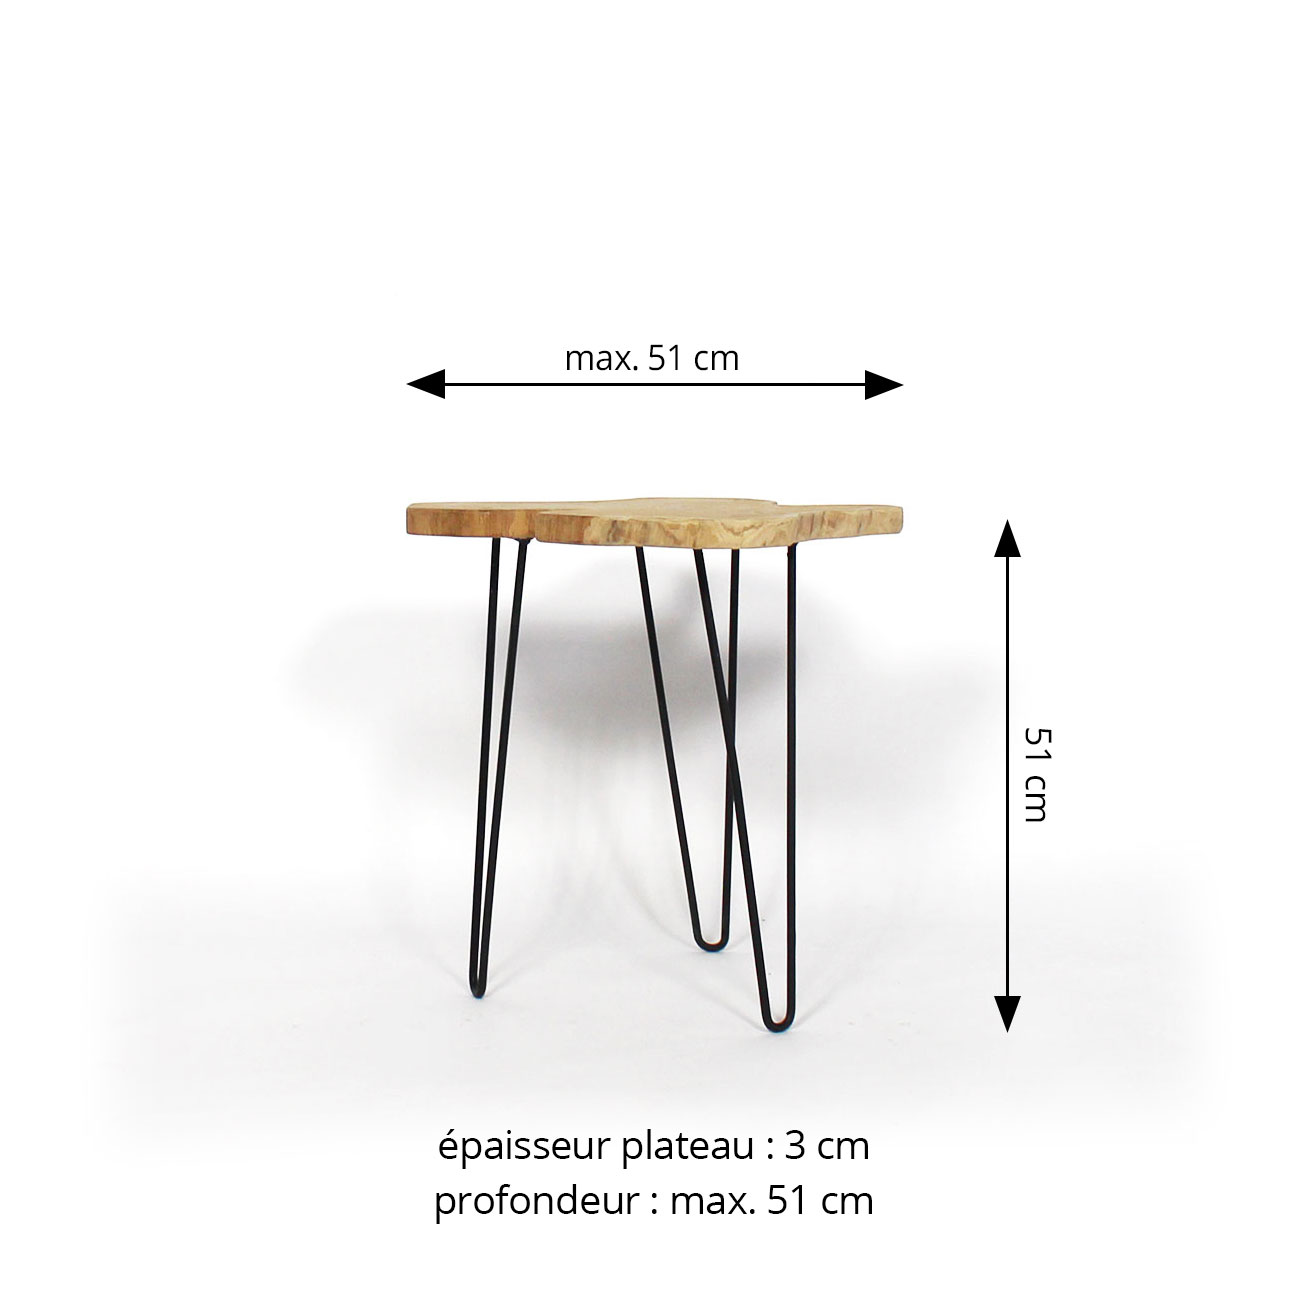 Table d'appoint dimensions